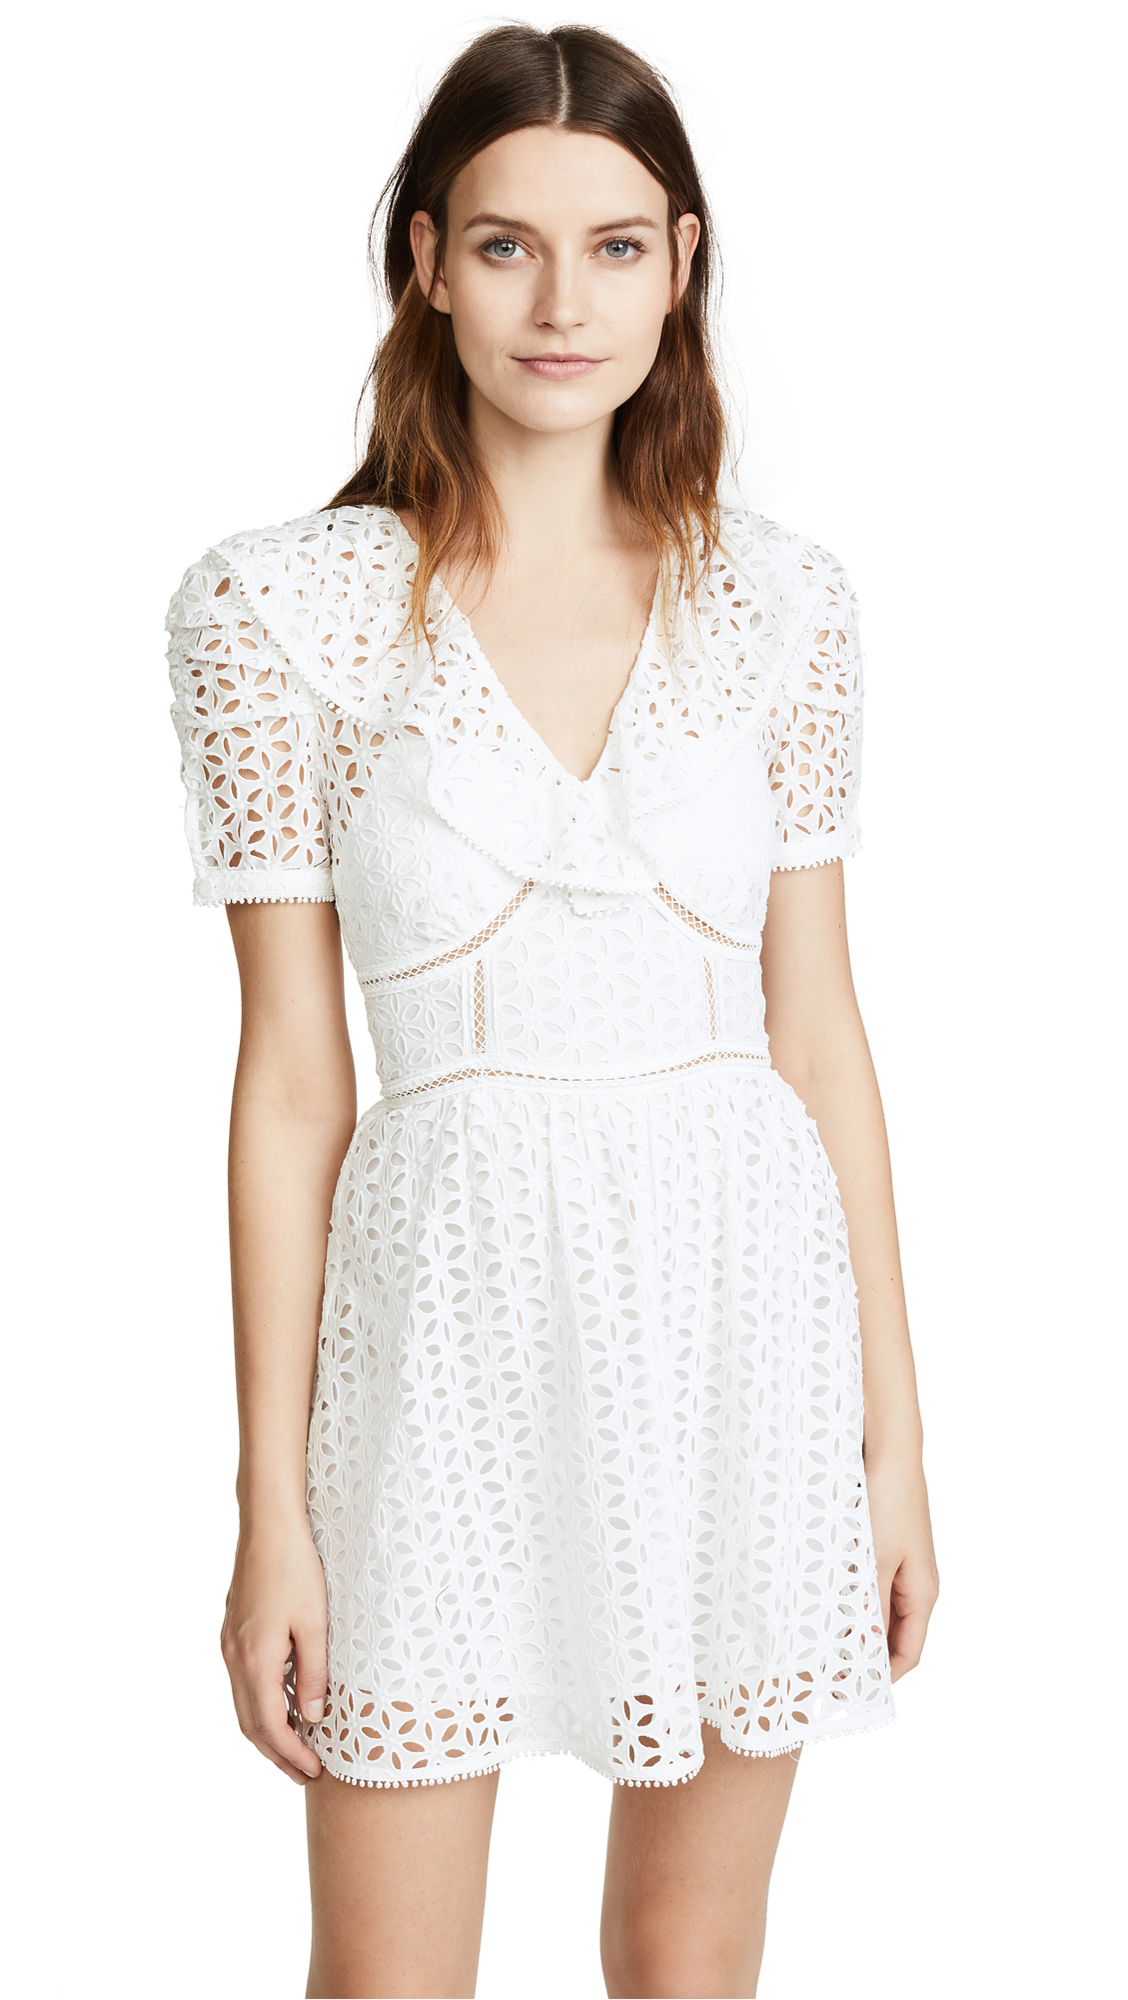 Self Portrait Mini Dress - White